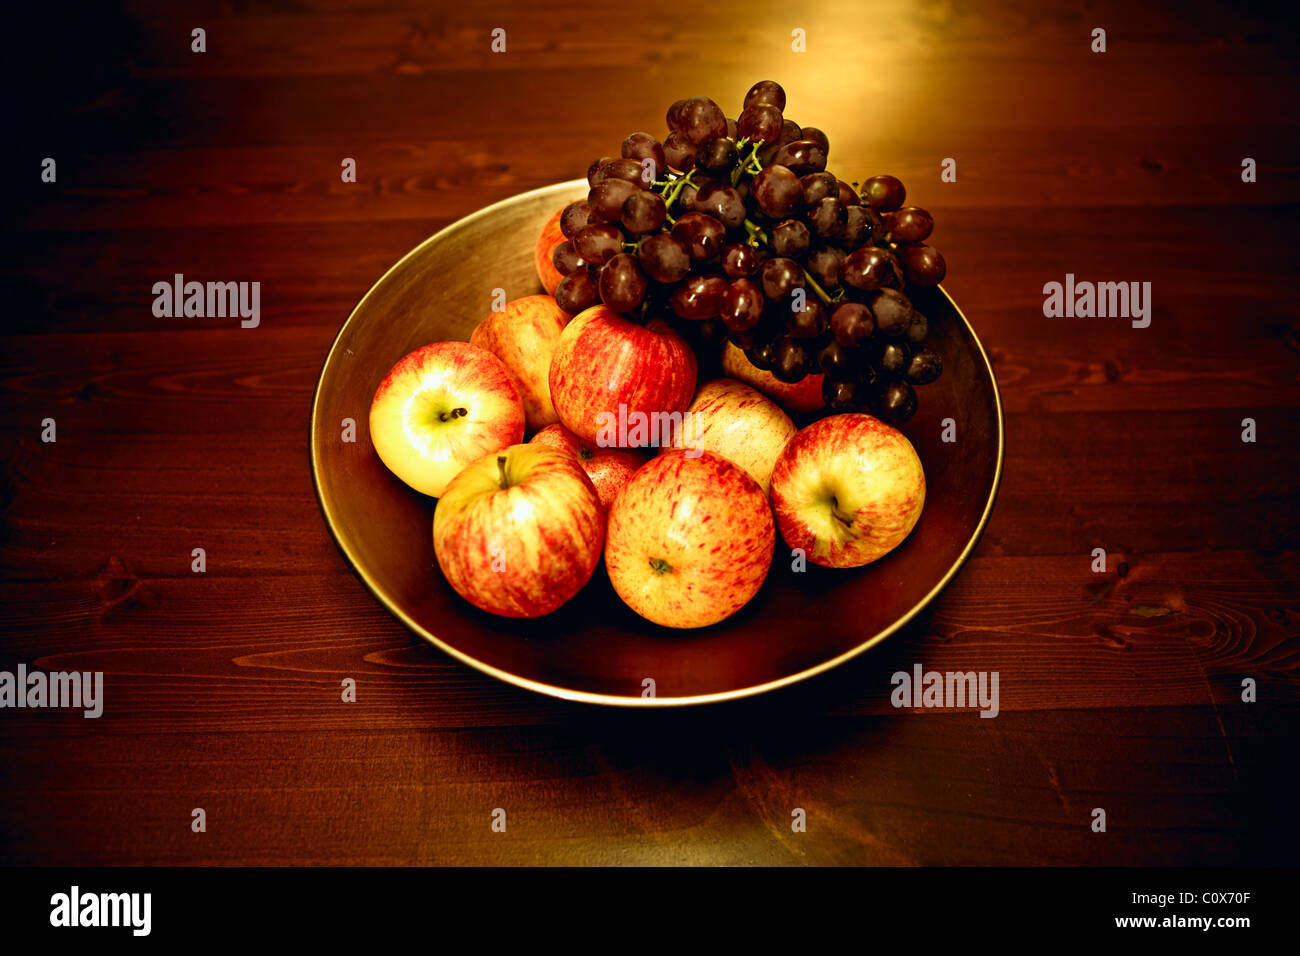 Bowl of apples and grapes on wooden table Stock Photo